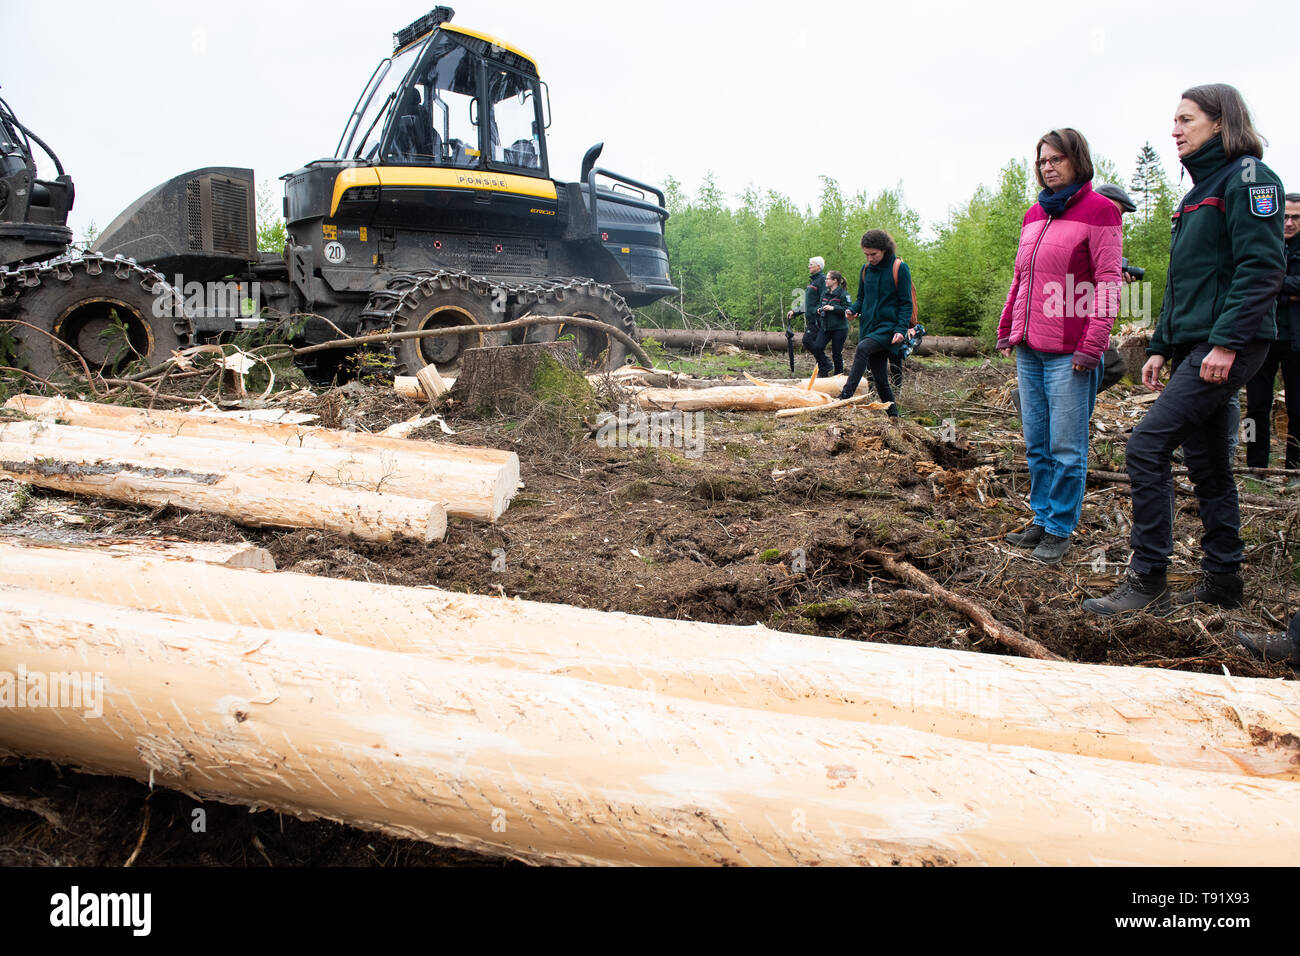 Sankt Ottilien, Germany. 16th May, 2019. Priska Hinz (Bündnis 90/Die Grünen), Minister of the Environment of Hesse, and Petra Westphal (r), head of the forestry office in Melsungen, stand next to a harvester (wood harvester) and debarked spruce trunks during a visit to a forest area in the Söhrewald which has been severely affected by the windthrow. After the drought of 2018, trees are weakened and susceptible to bark beetle infestation. Credit: Swen Pförtner/dpa/Alamy Live News - Stock Image